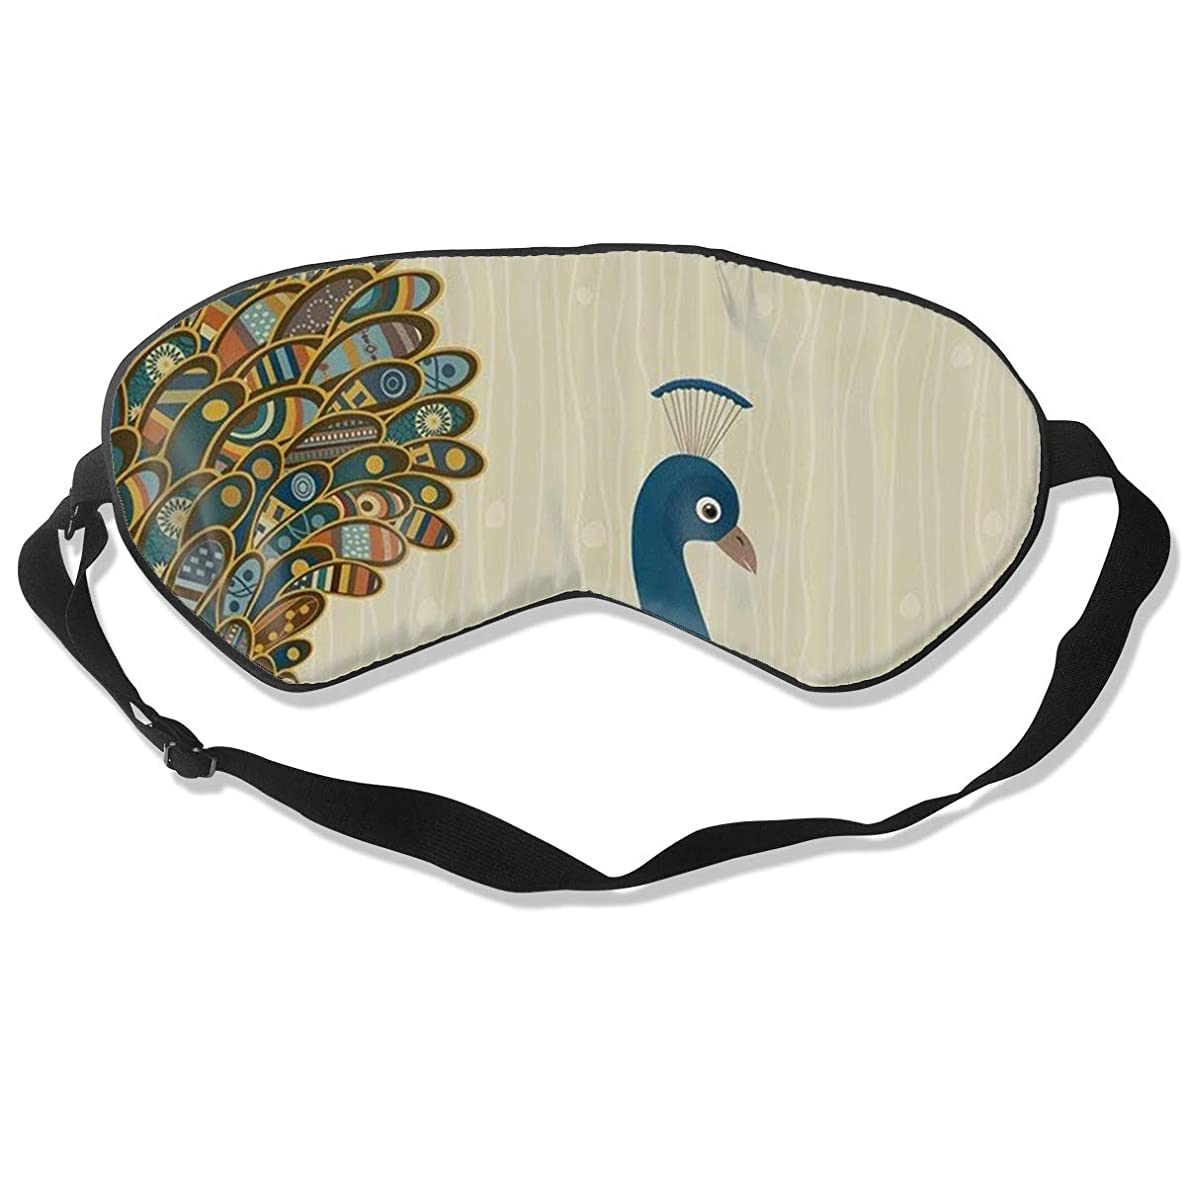 EEGOGO Tuscany Seen from Stone Ancient Village Sleep Mask Made of Mulberry Silk,Non-Toxic, Odorless and Harmless,100% Silk Sleep Mask Comfortable,Soft Blindfold Eye Mask Good for Travel and Sleep